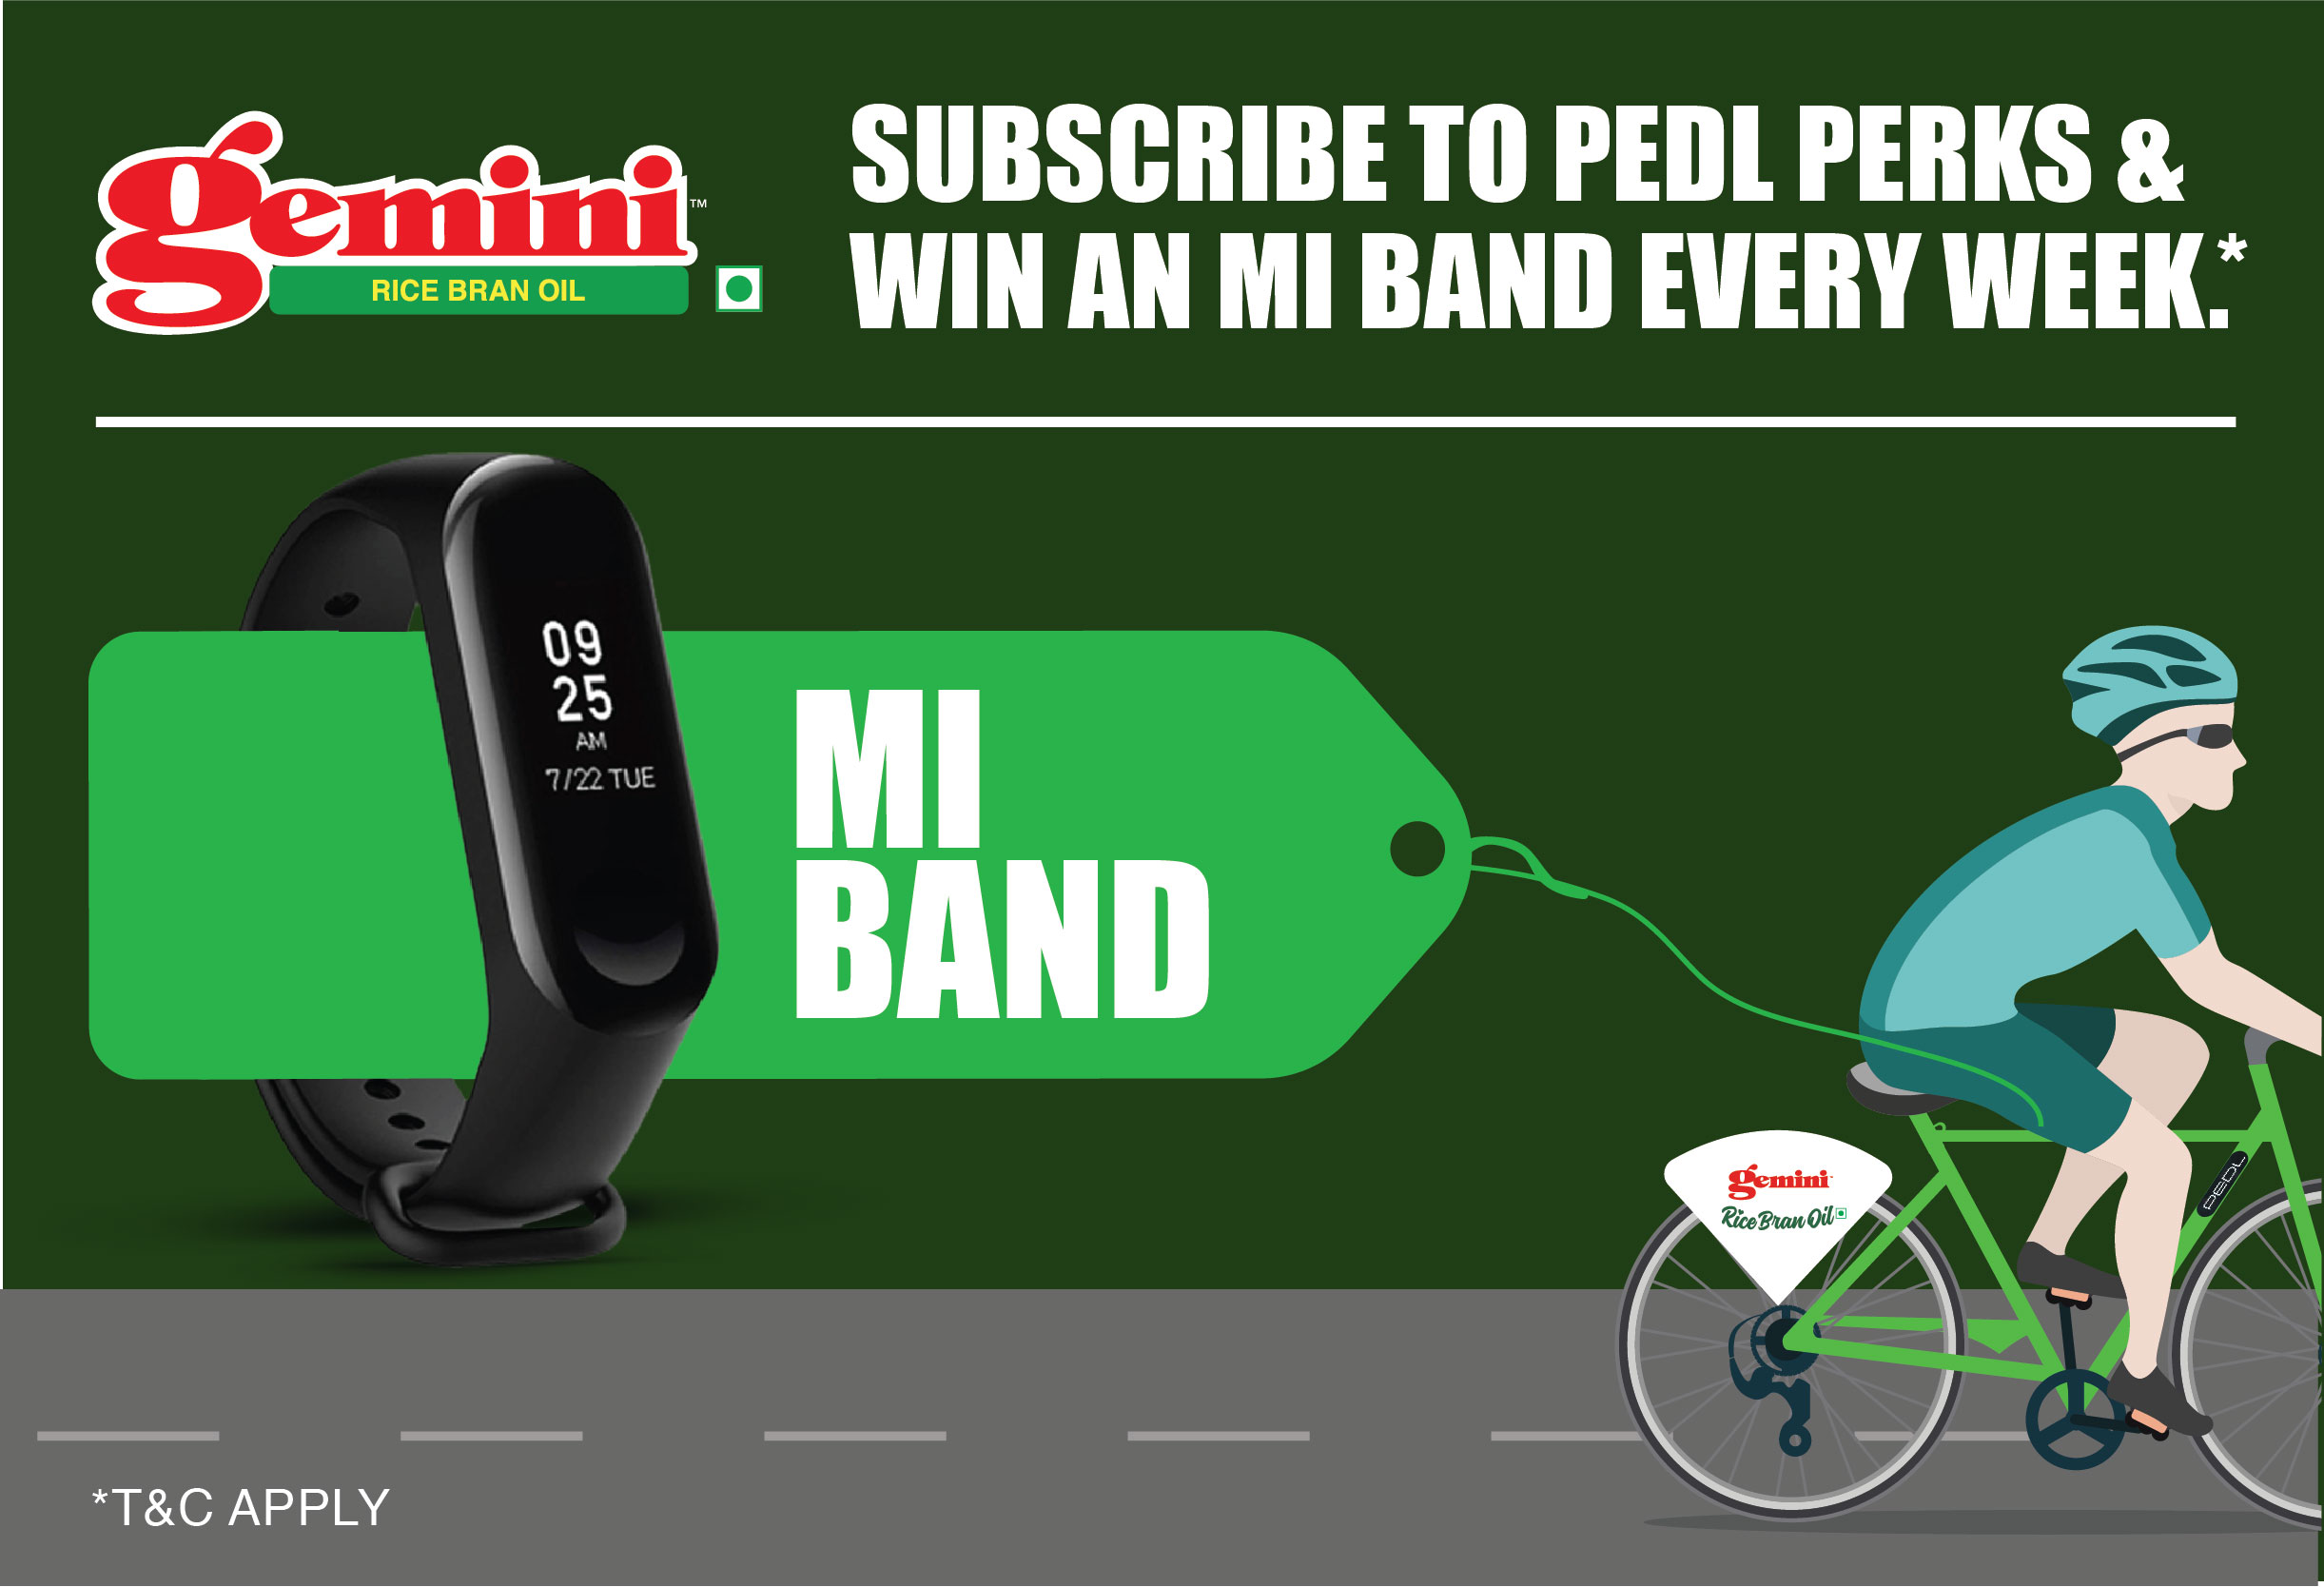 <br><b>Stand a chance to win Mi bands every week a Gemini Oil hamper daily, courtesy of Cargill India.</b>